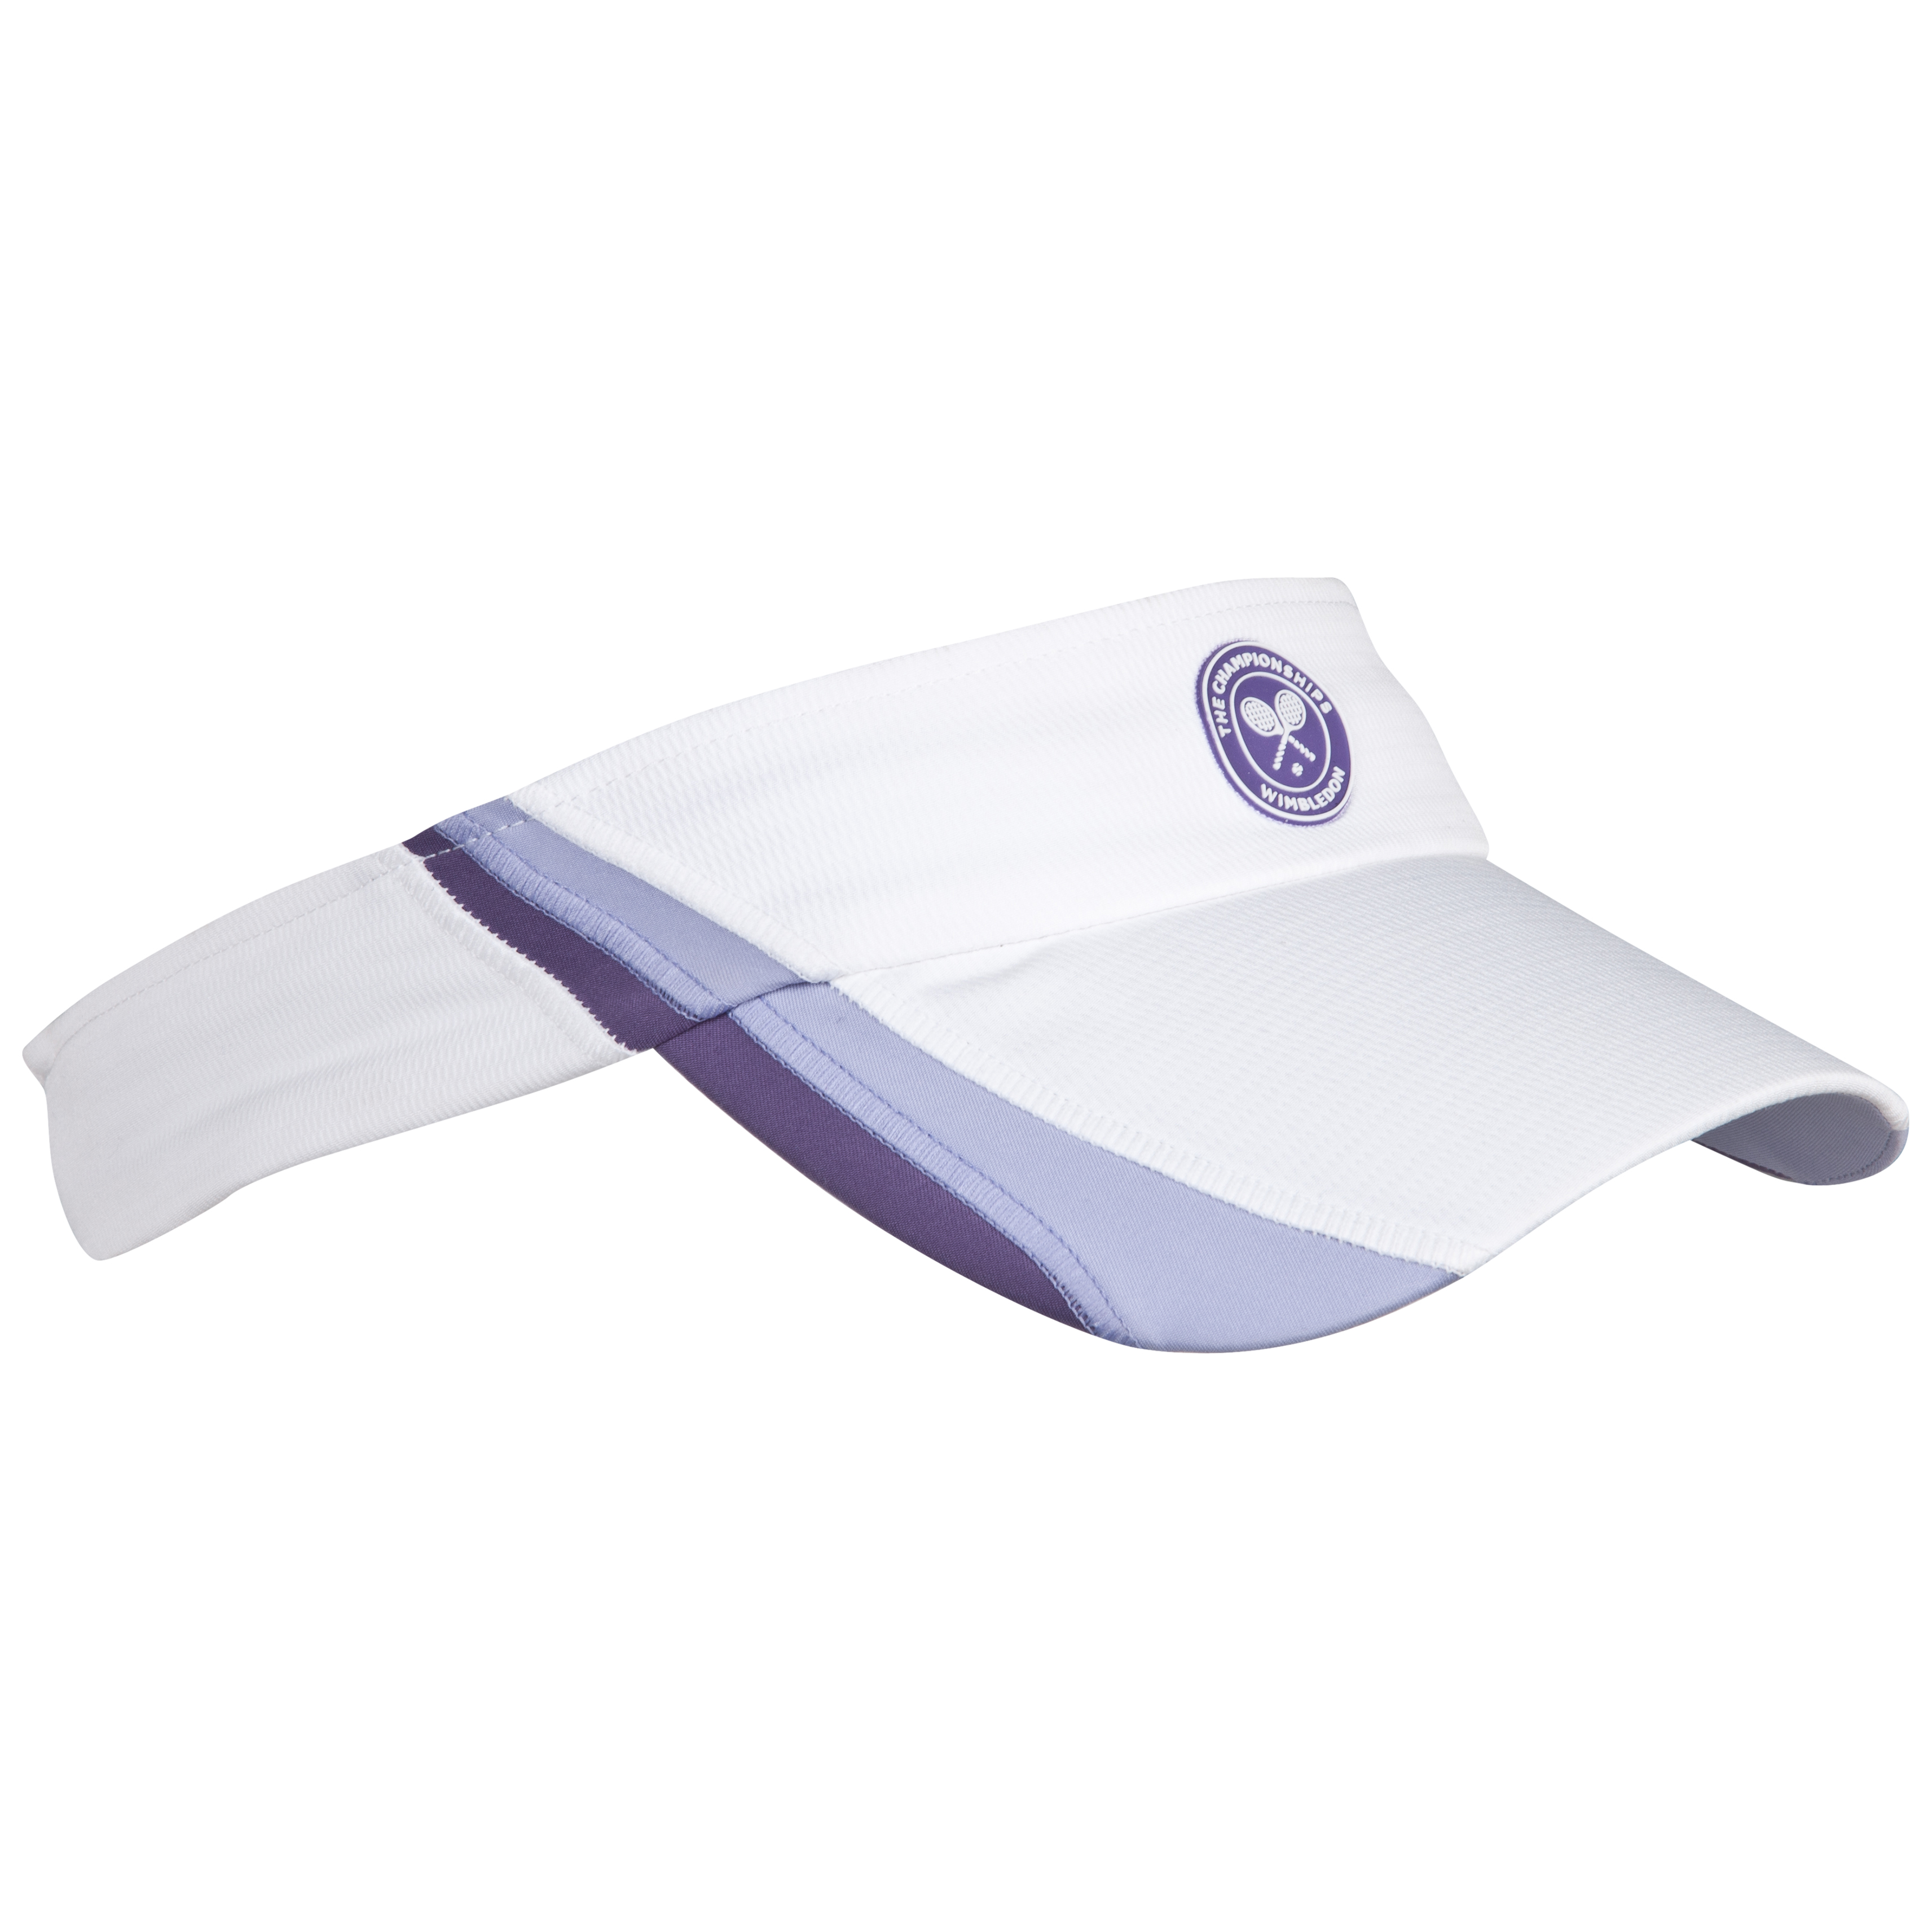 Wimbledon Player Visor - Ladies - White